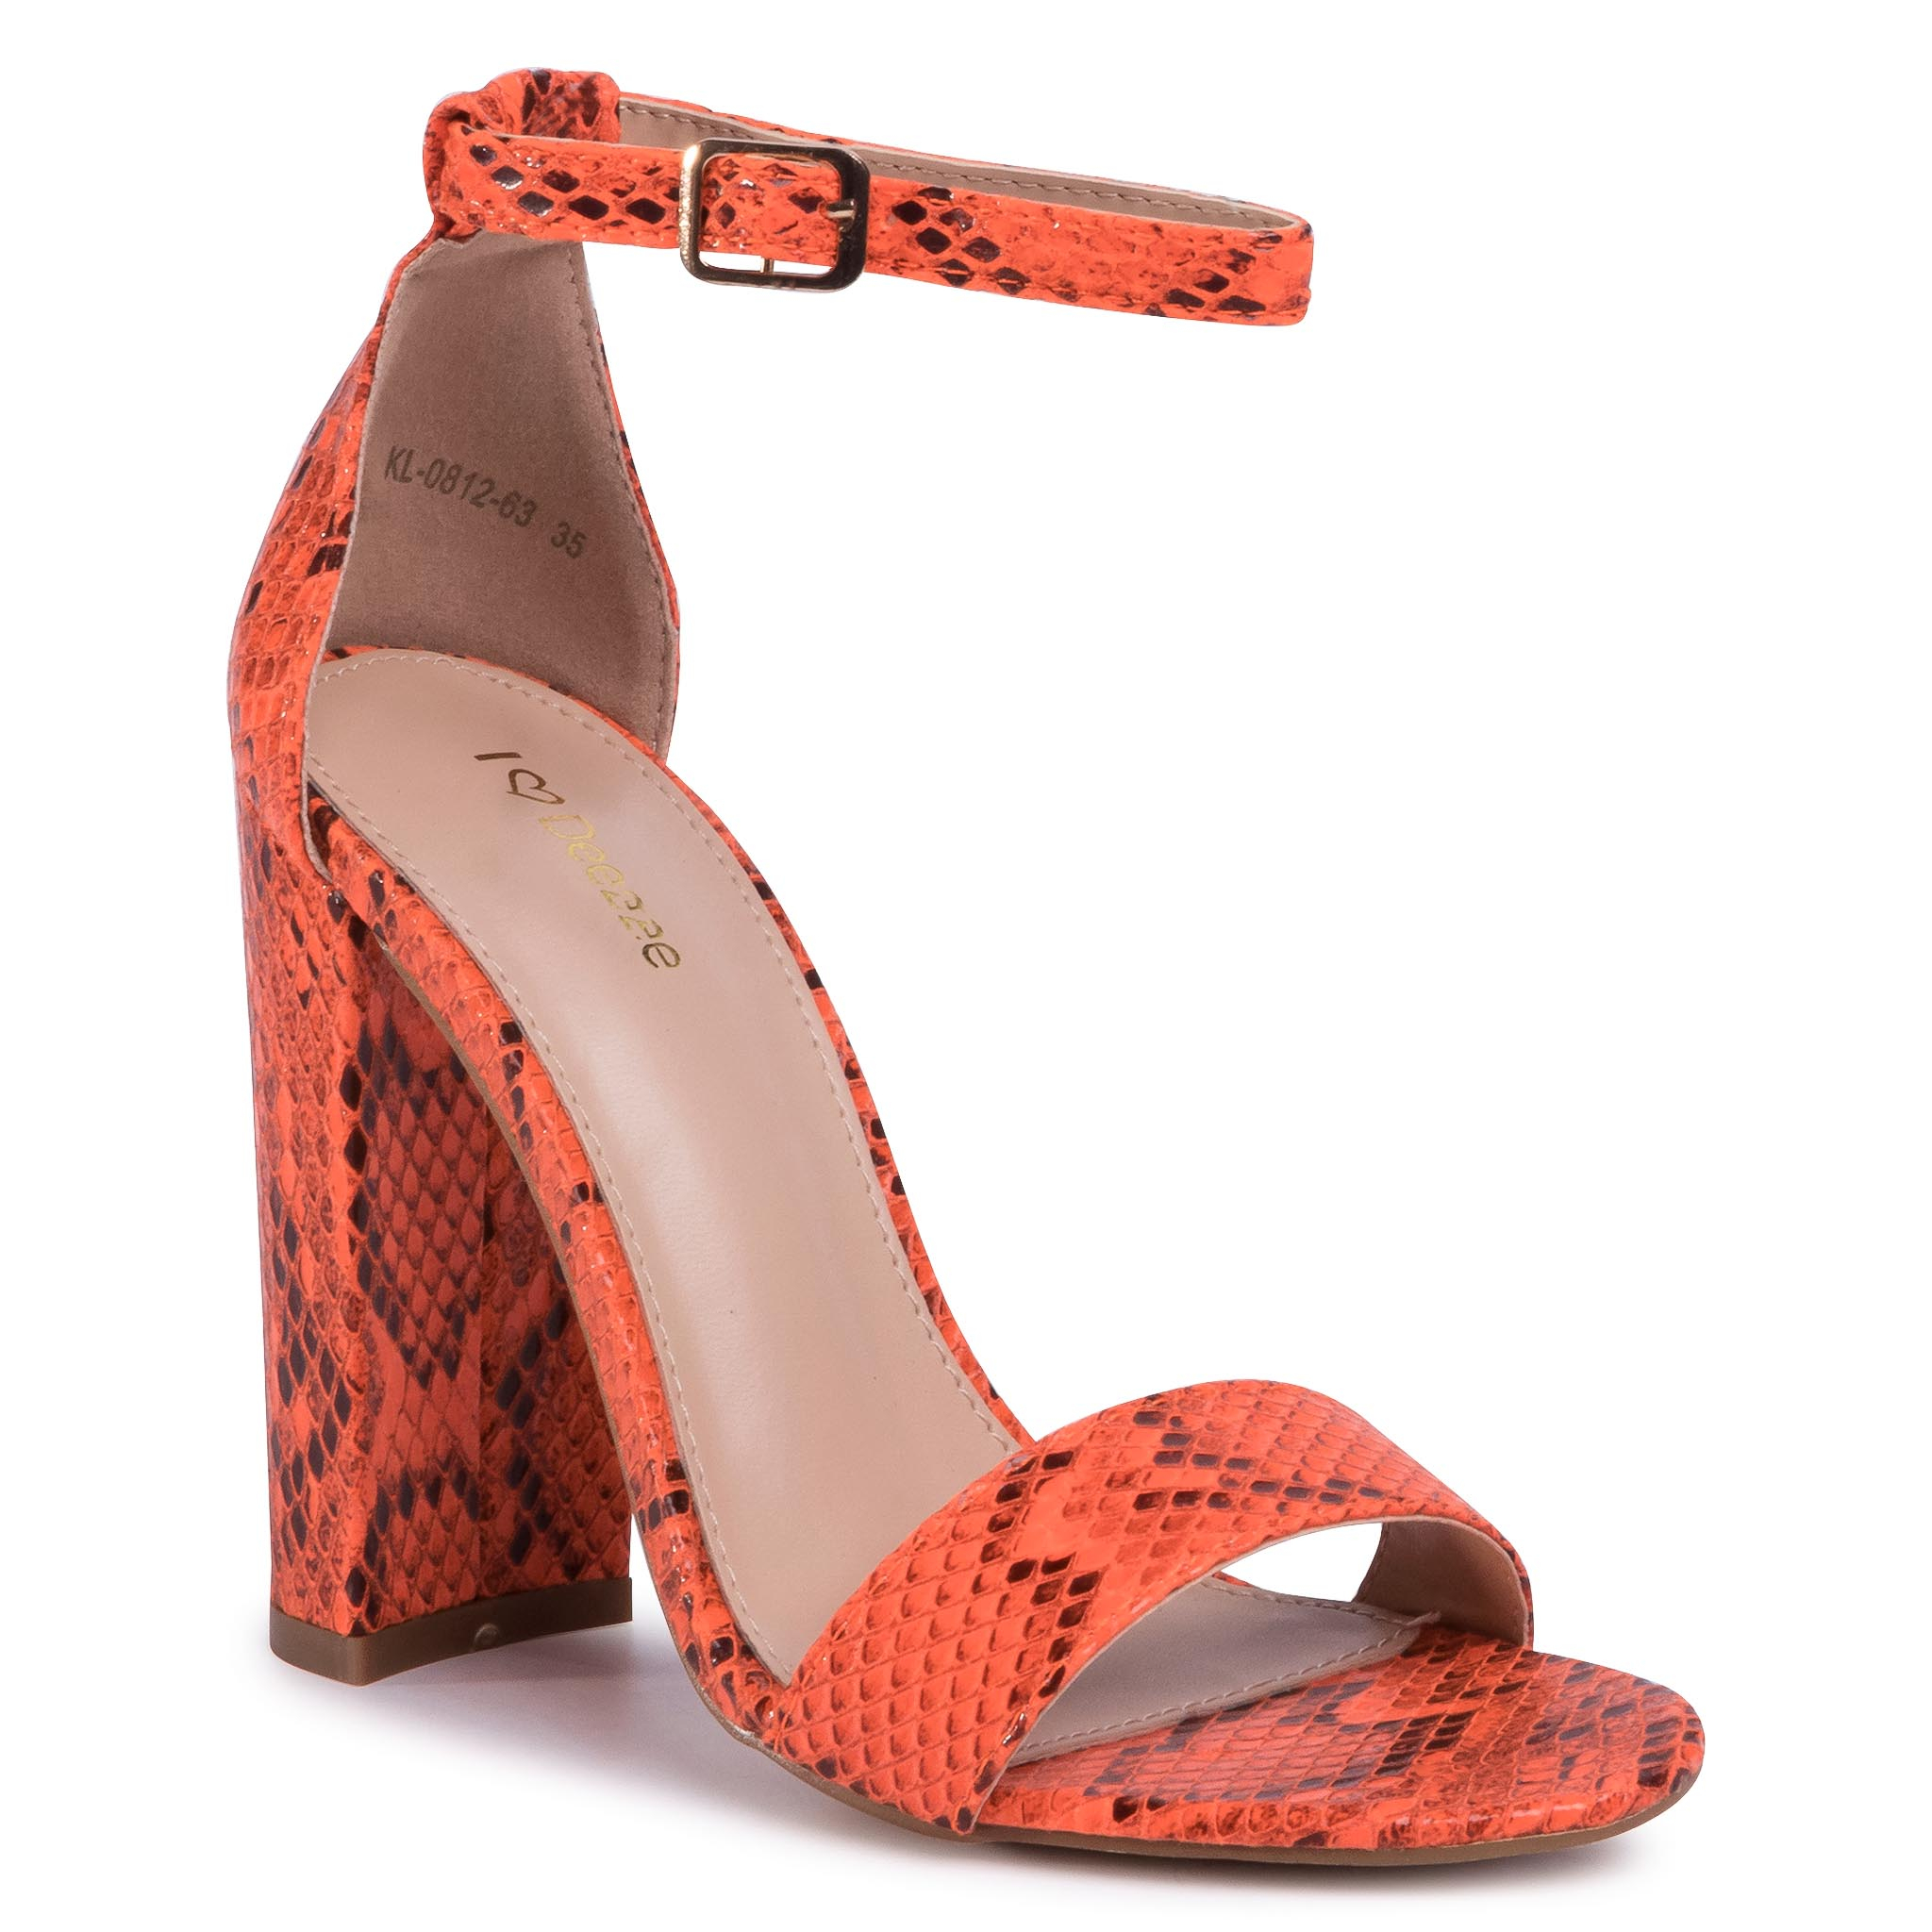 Sandale DEEZEE - KL-0812-63 Orange